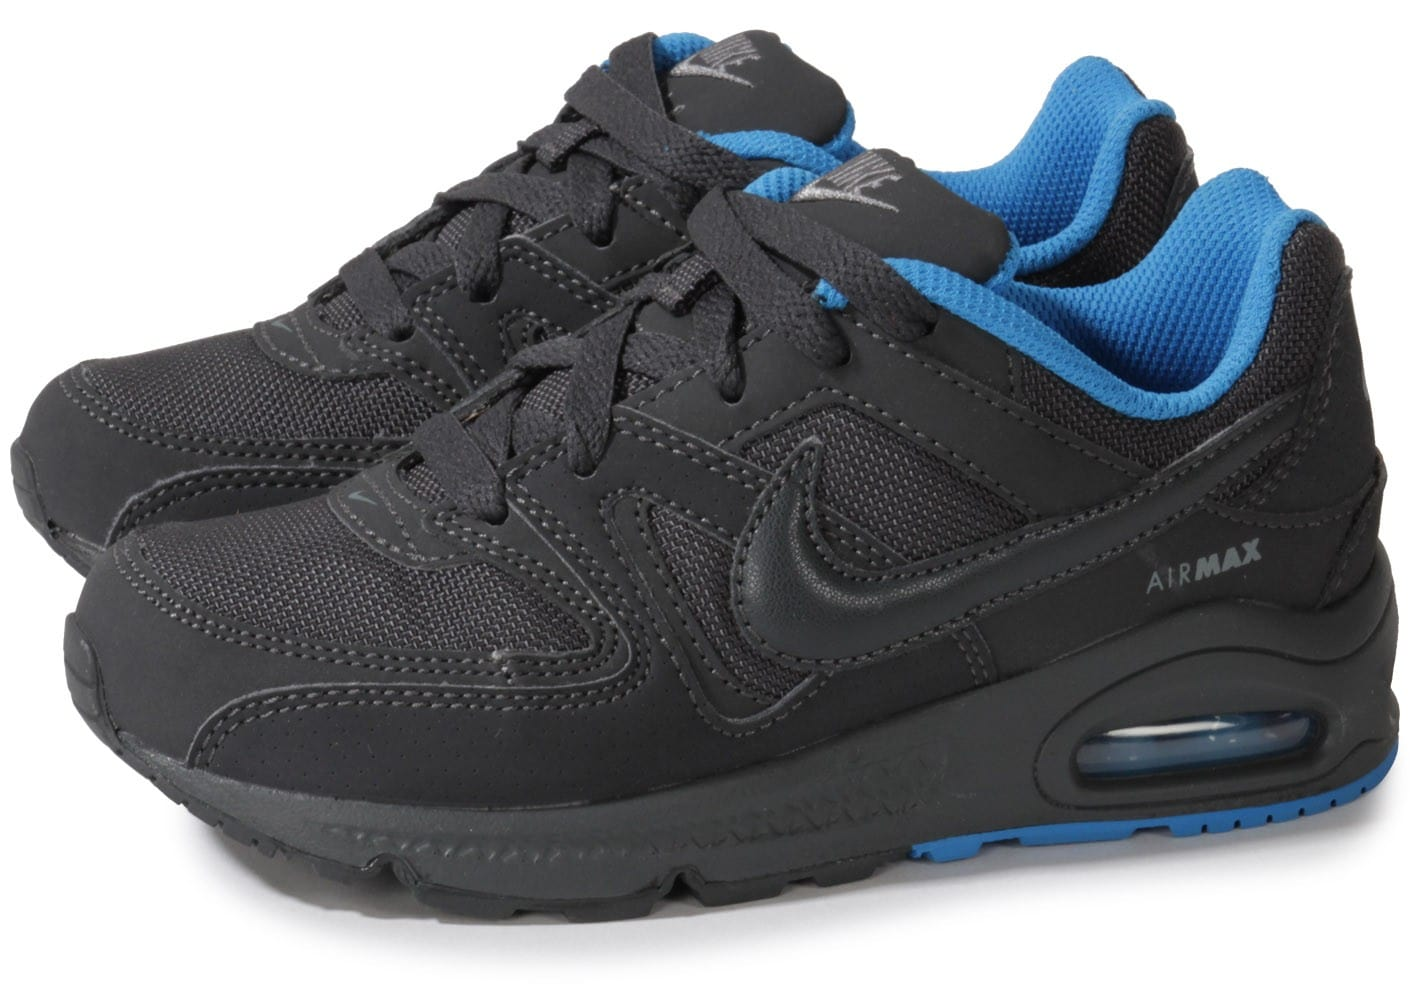 nike air max command enfant anthracite chaussures chaussures chausport. Black Bedroom Furniture Sets. Home Design Ideas